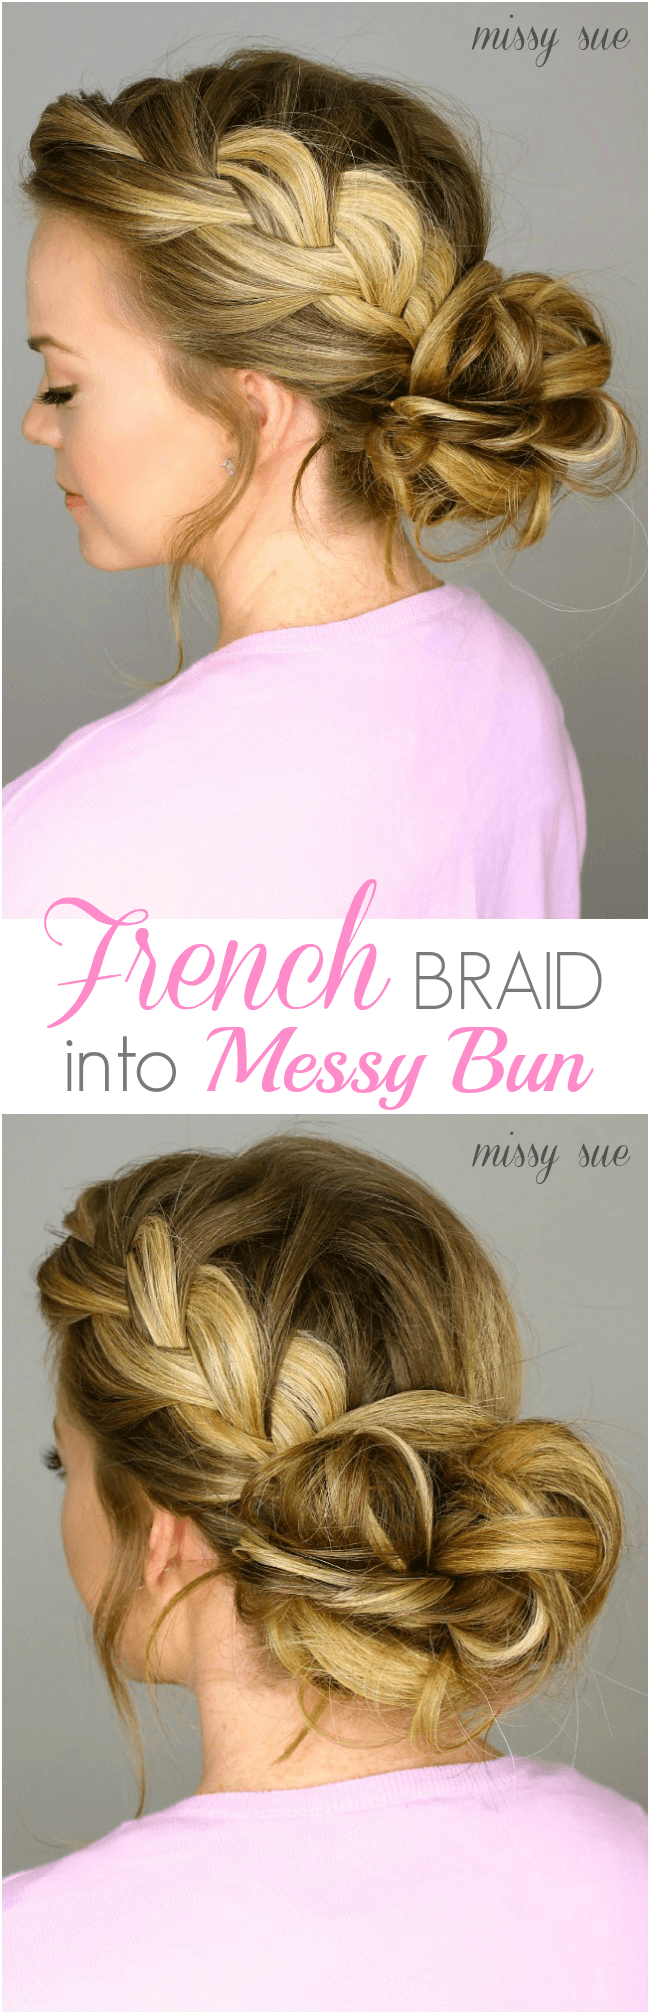 Fine French Braid Into Messy Bun Short Hairstyles For Black Women Fulllsitofus